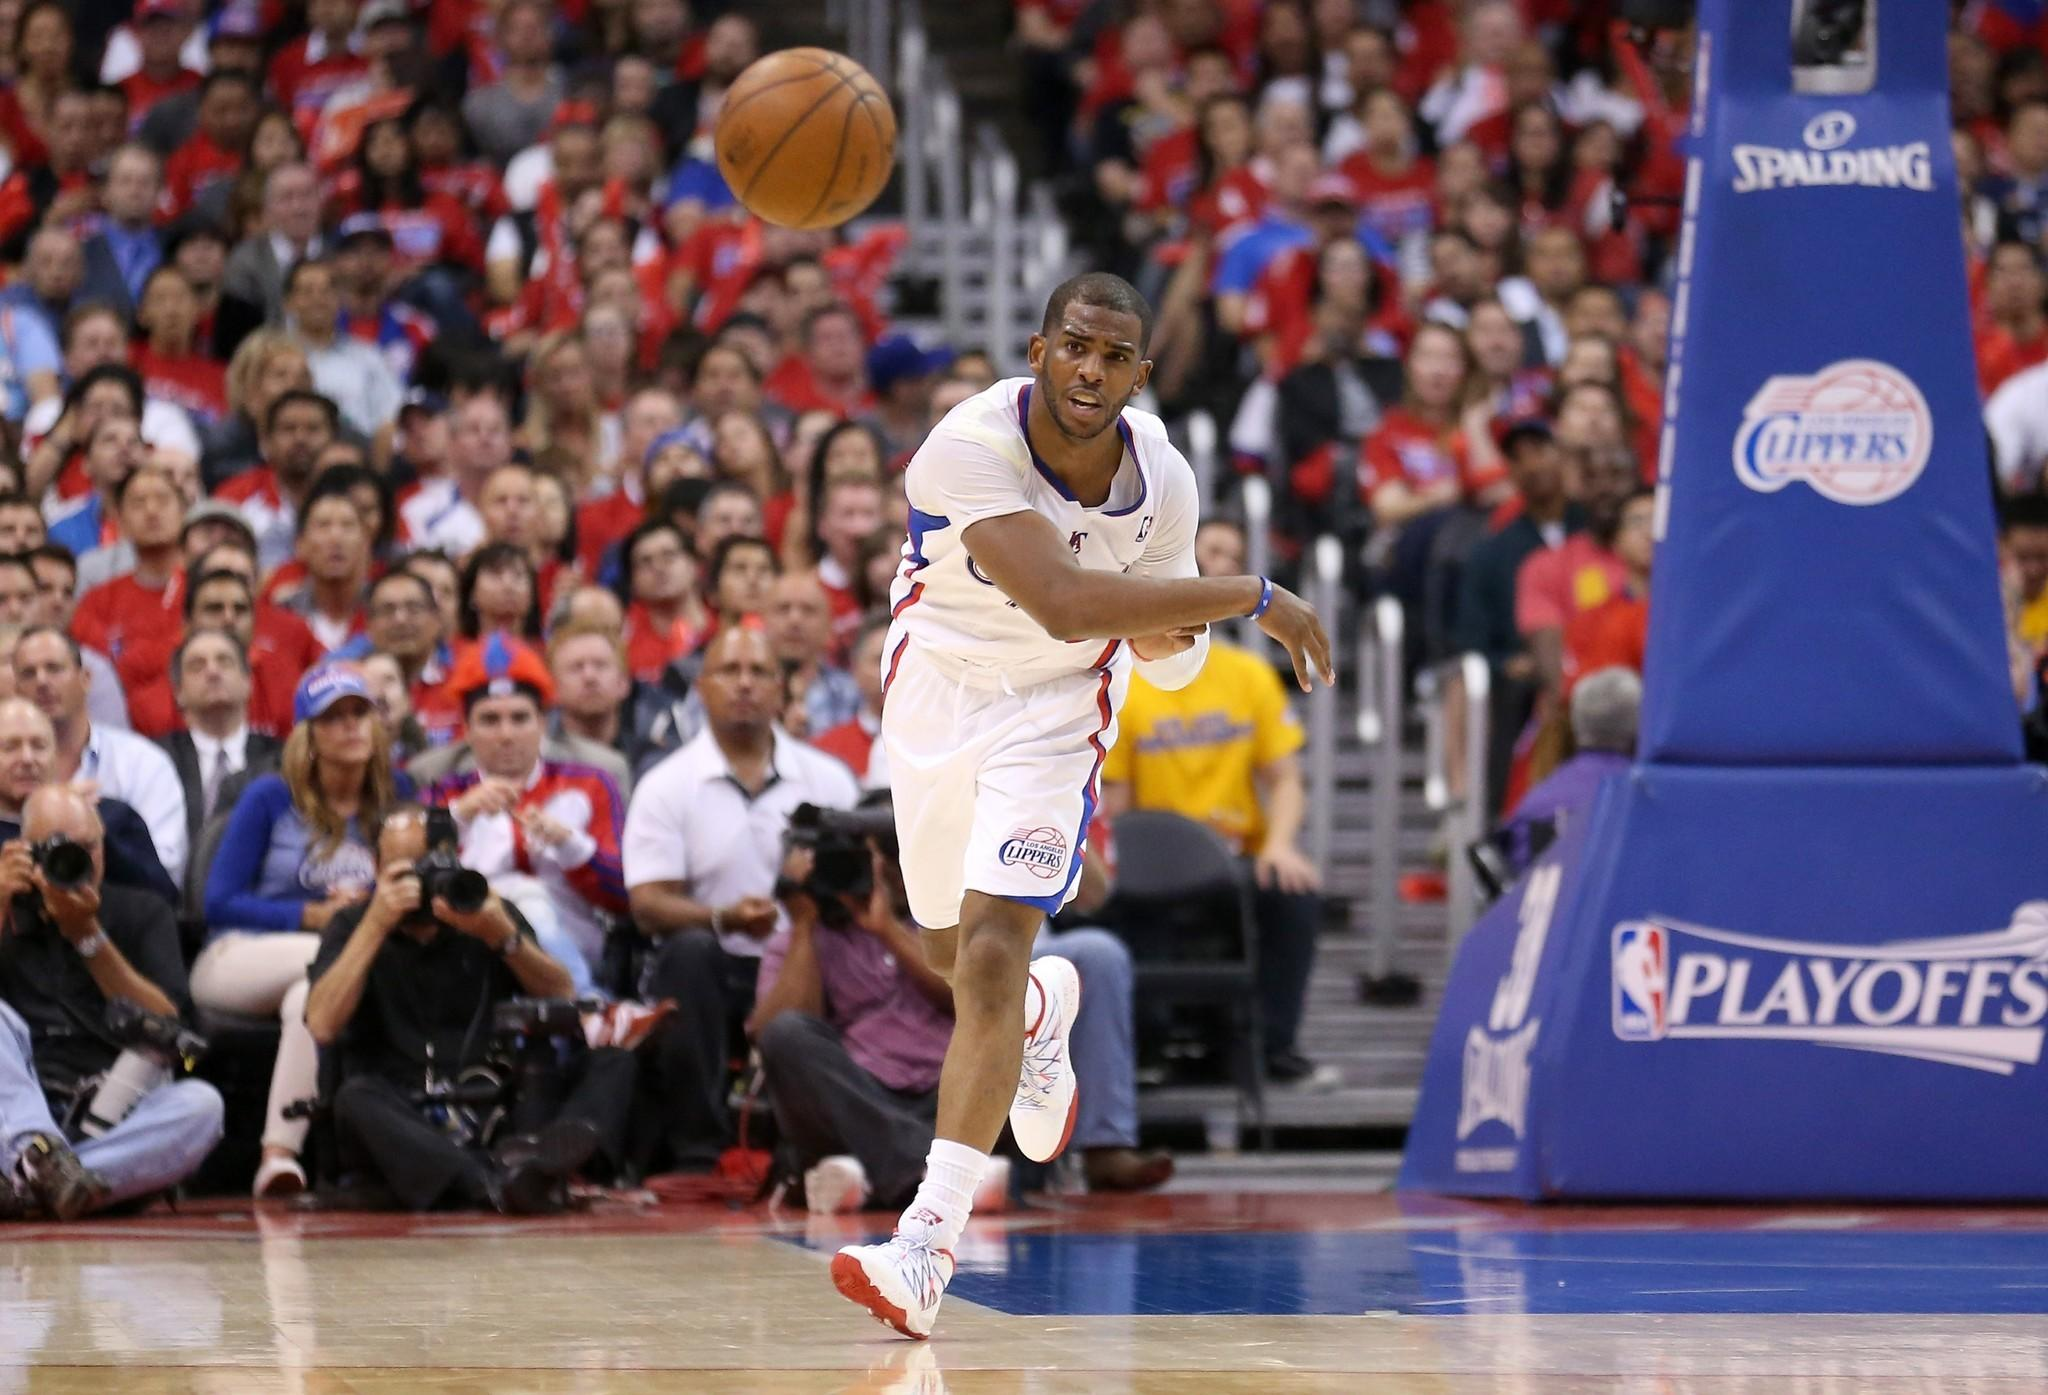 Chris Paul has been dealing with a right hamstring injury that first occurred in the second quarter of Game 1 of the Western Conference playoff series between the Clippers and Golden State Warriors.